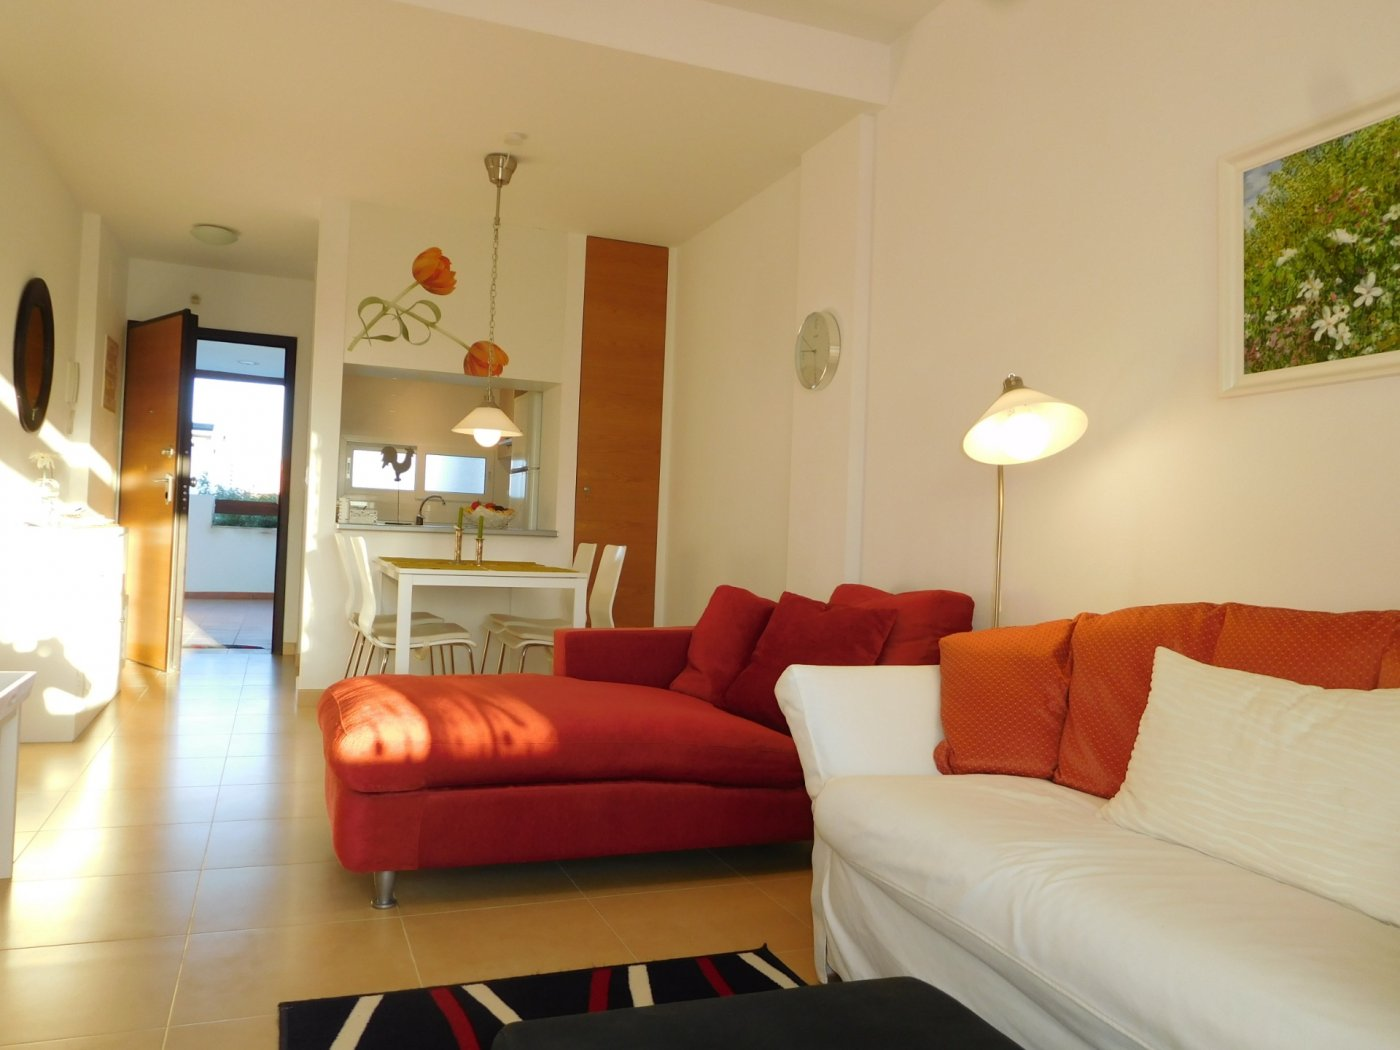 Gallery Image 1 of Apartment For rent in Condado De Alhama, Alhama De Murcia With Pool